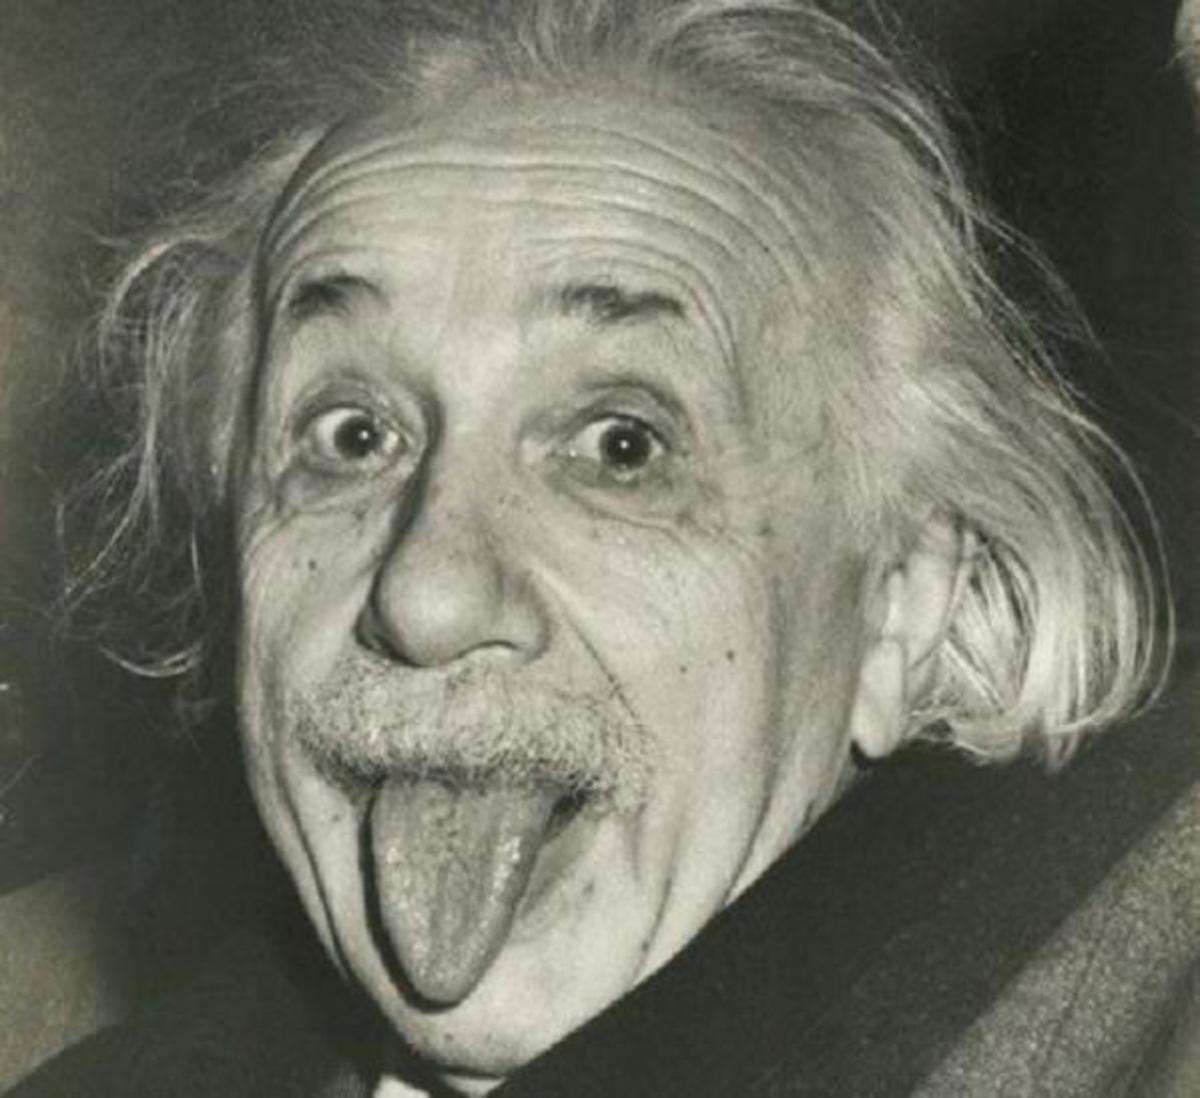 One of the most famous photographs of Einstein features him sticking out his tongue in a display of his trademark goofiness.